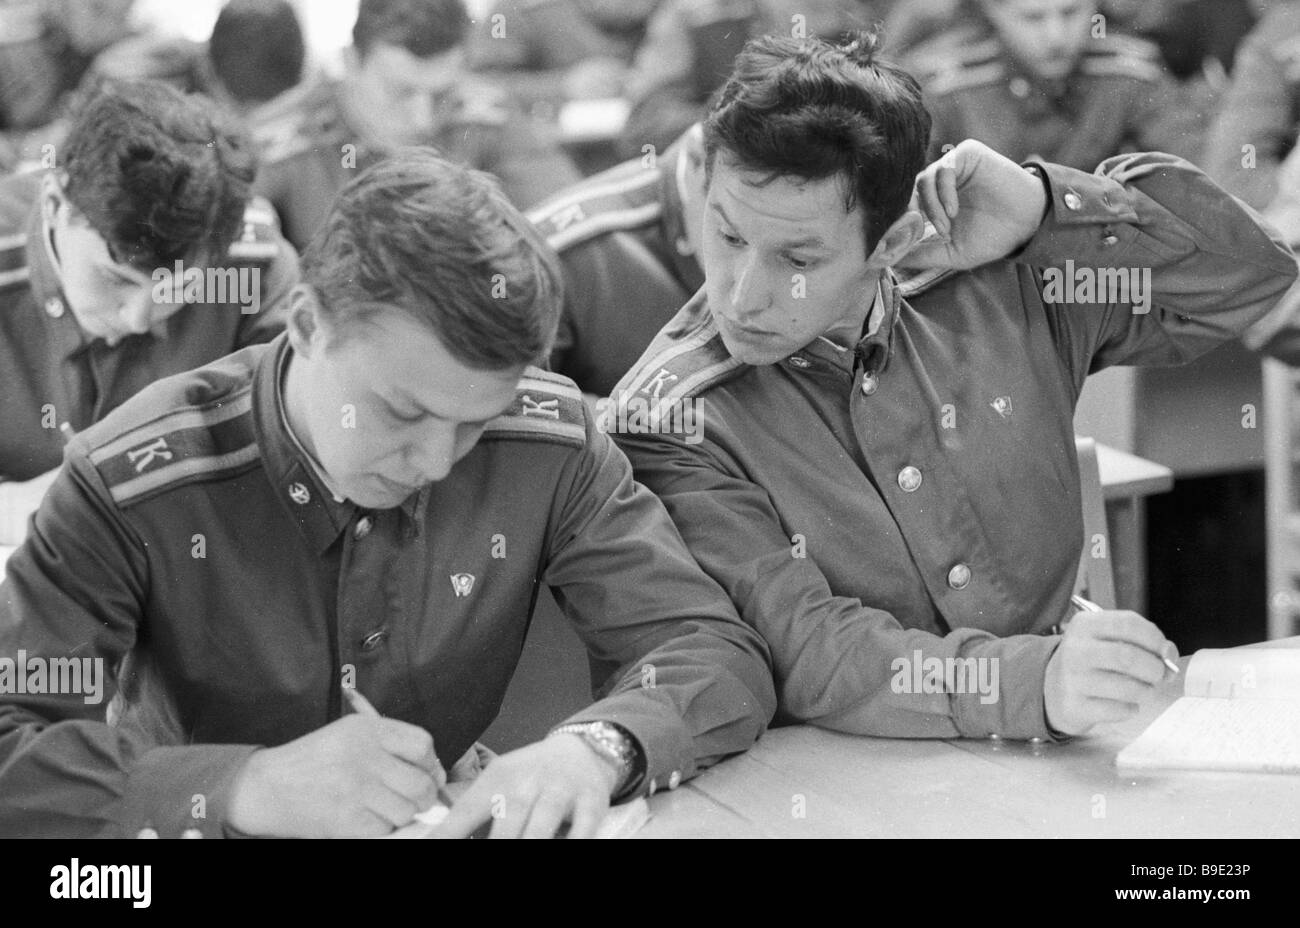 Cadets of the Moscow Mossovet Border Guards Command Higher School of the USSR KGB at the classes Stock Photo